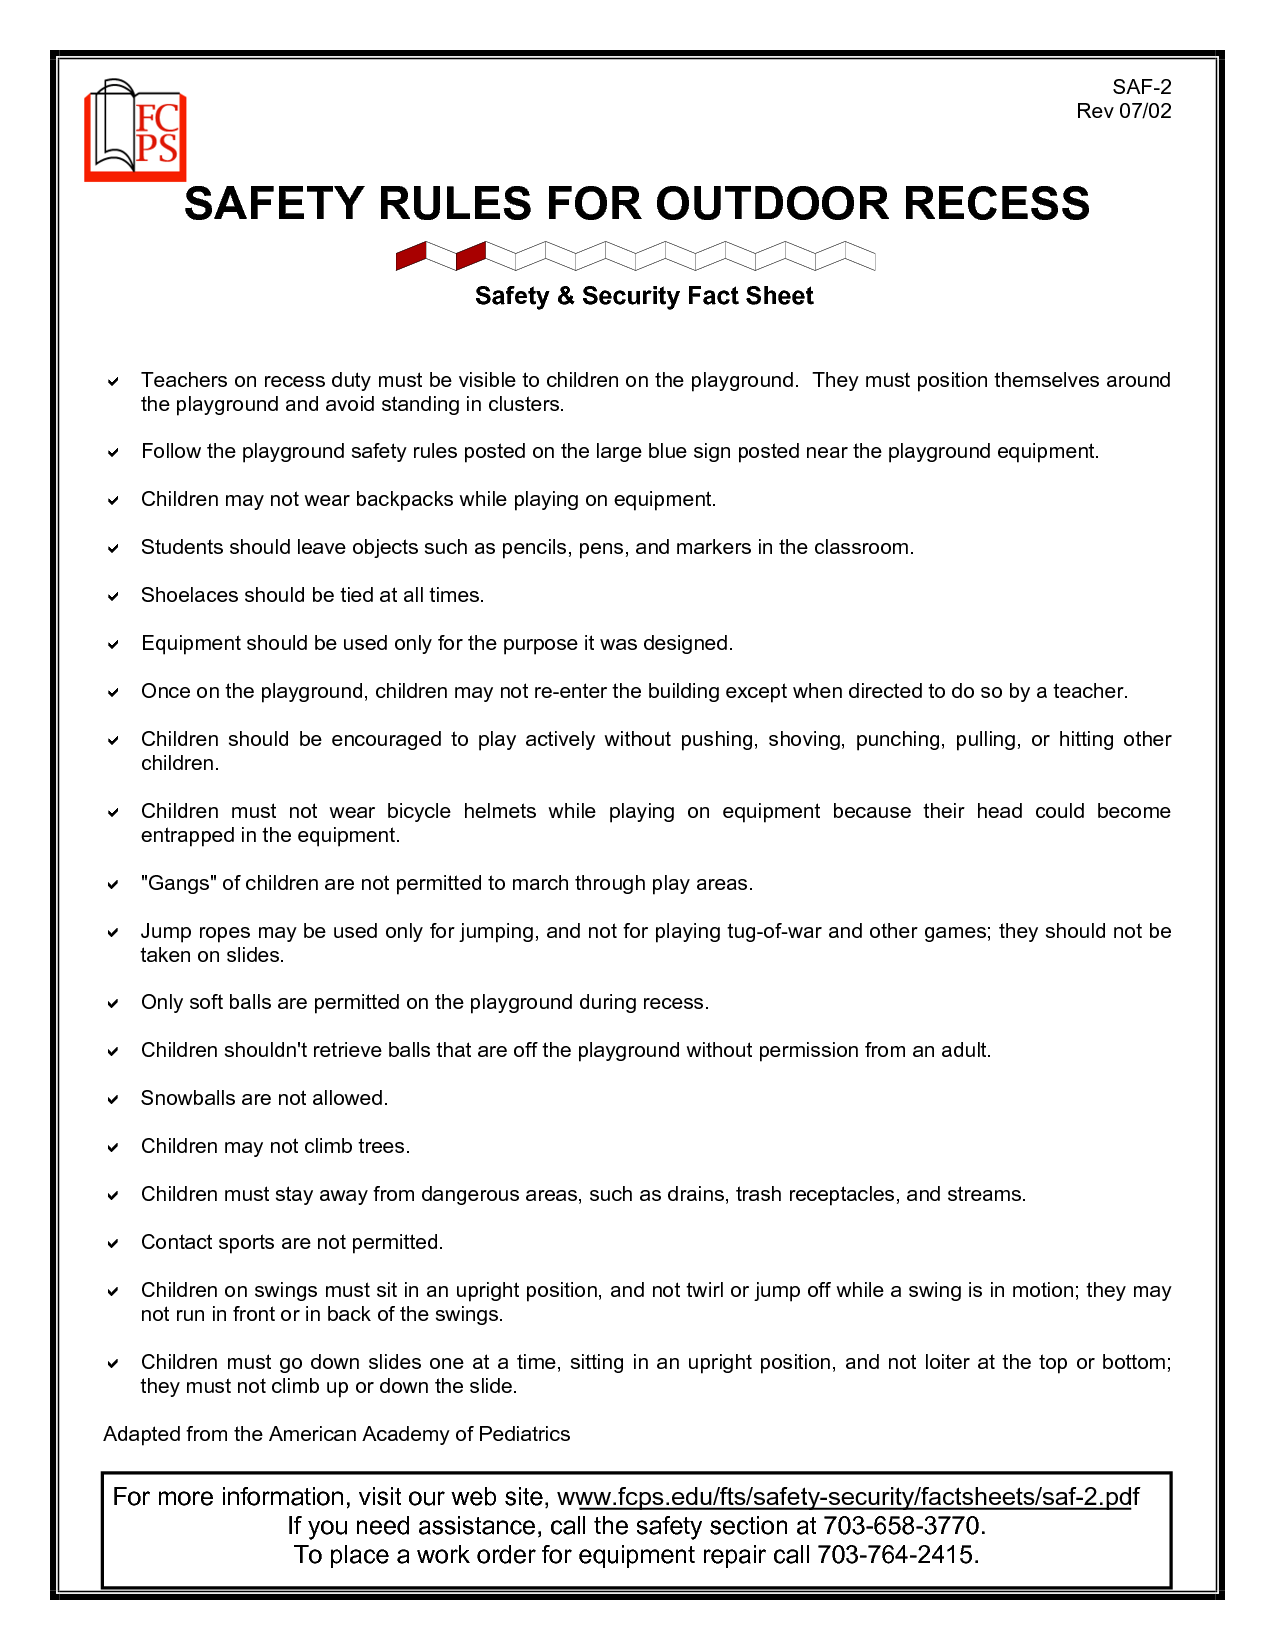 Outdoor Safety For Preschoolers